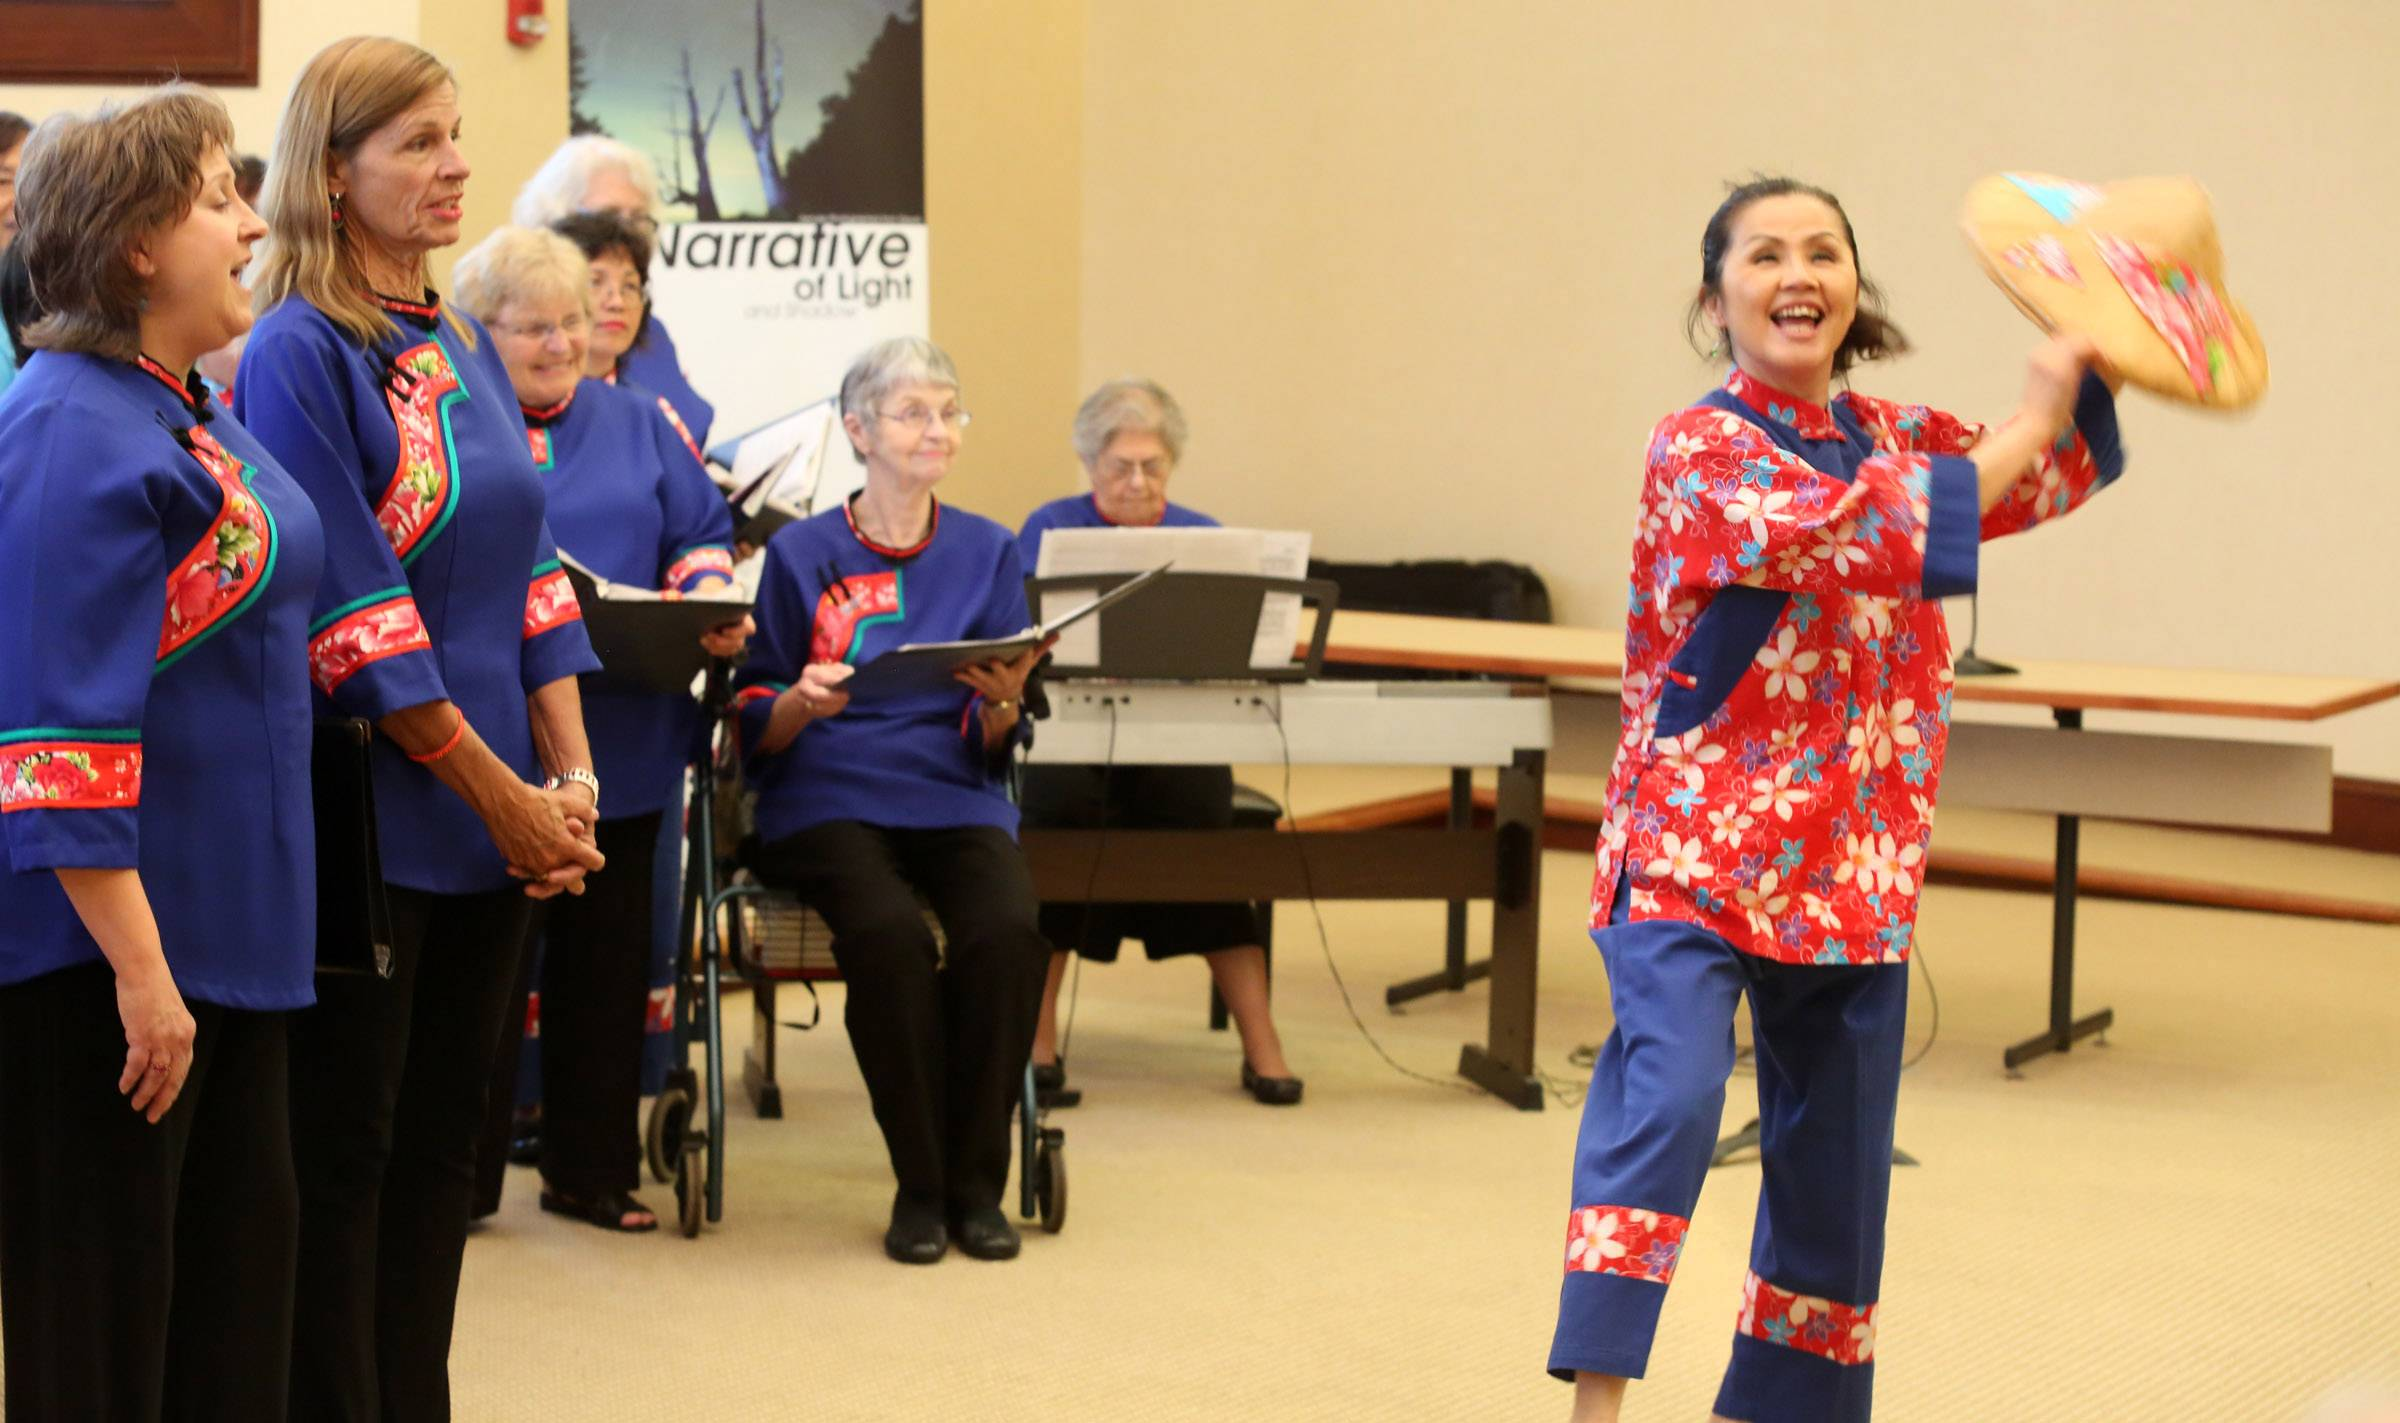 Sherry Yu, of Westmont, captain of the Chicago Hakka Chorus, dances before the crowd at village hall.